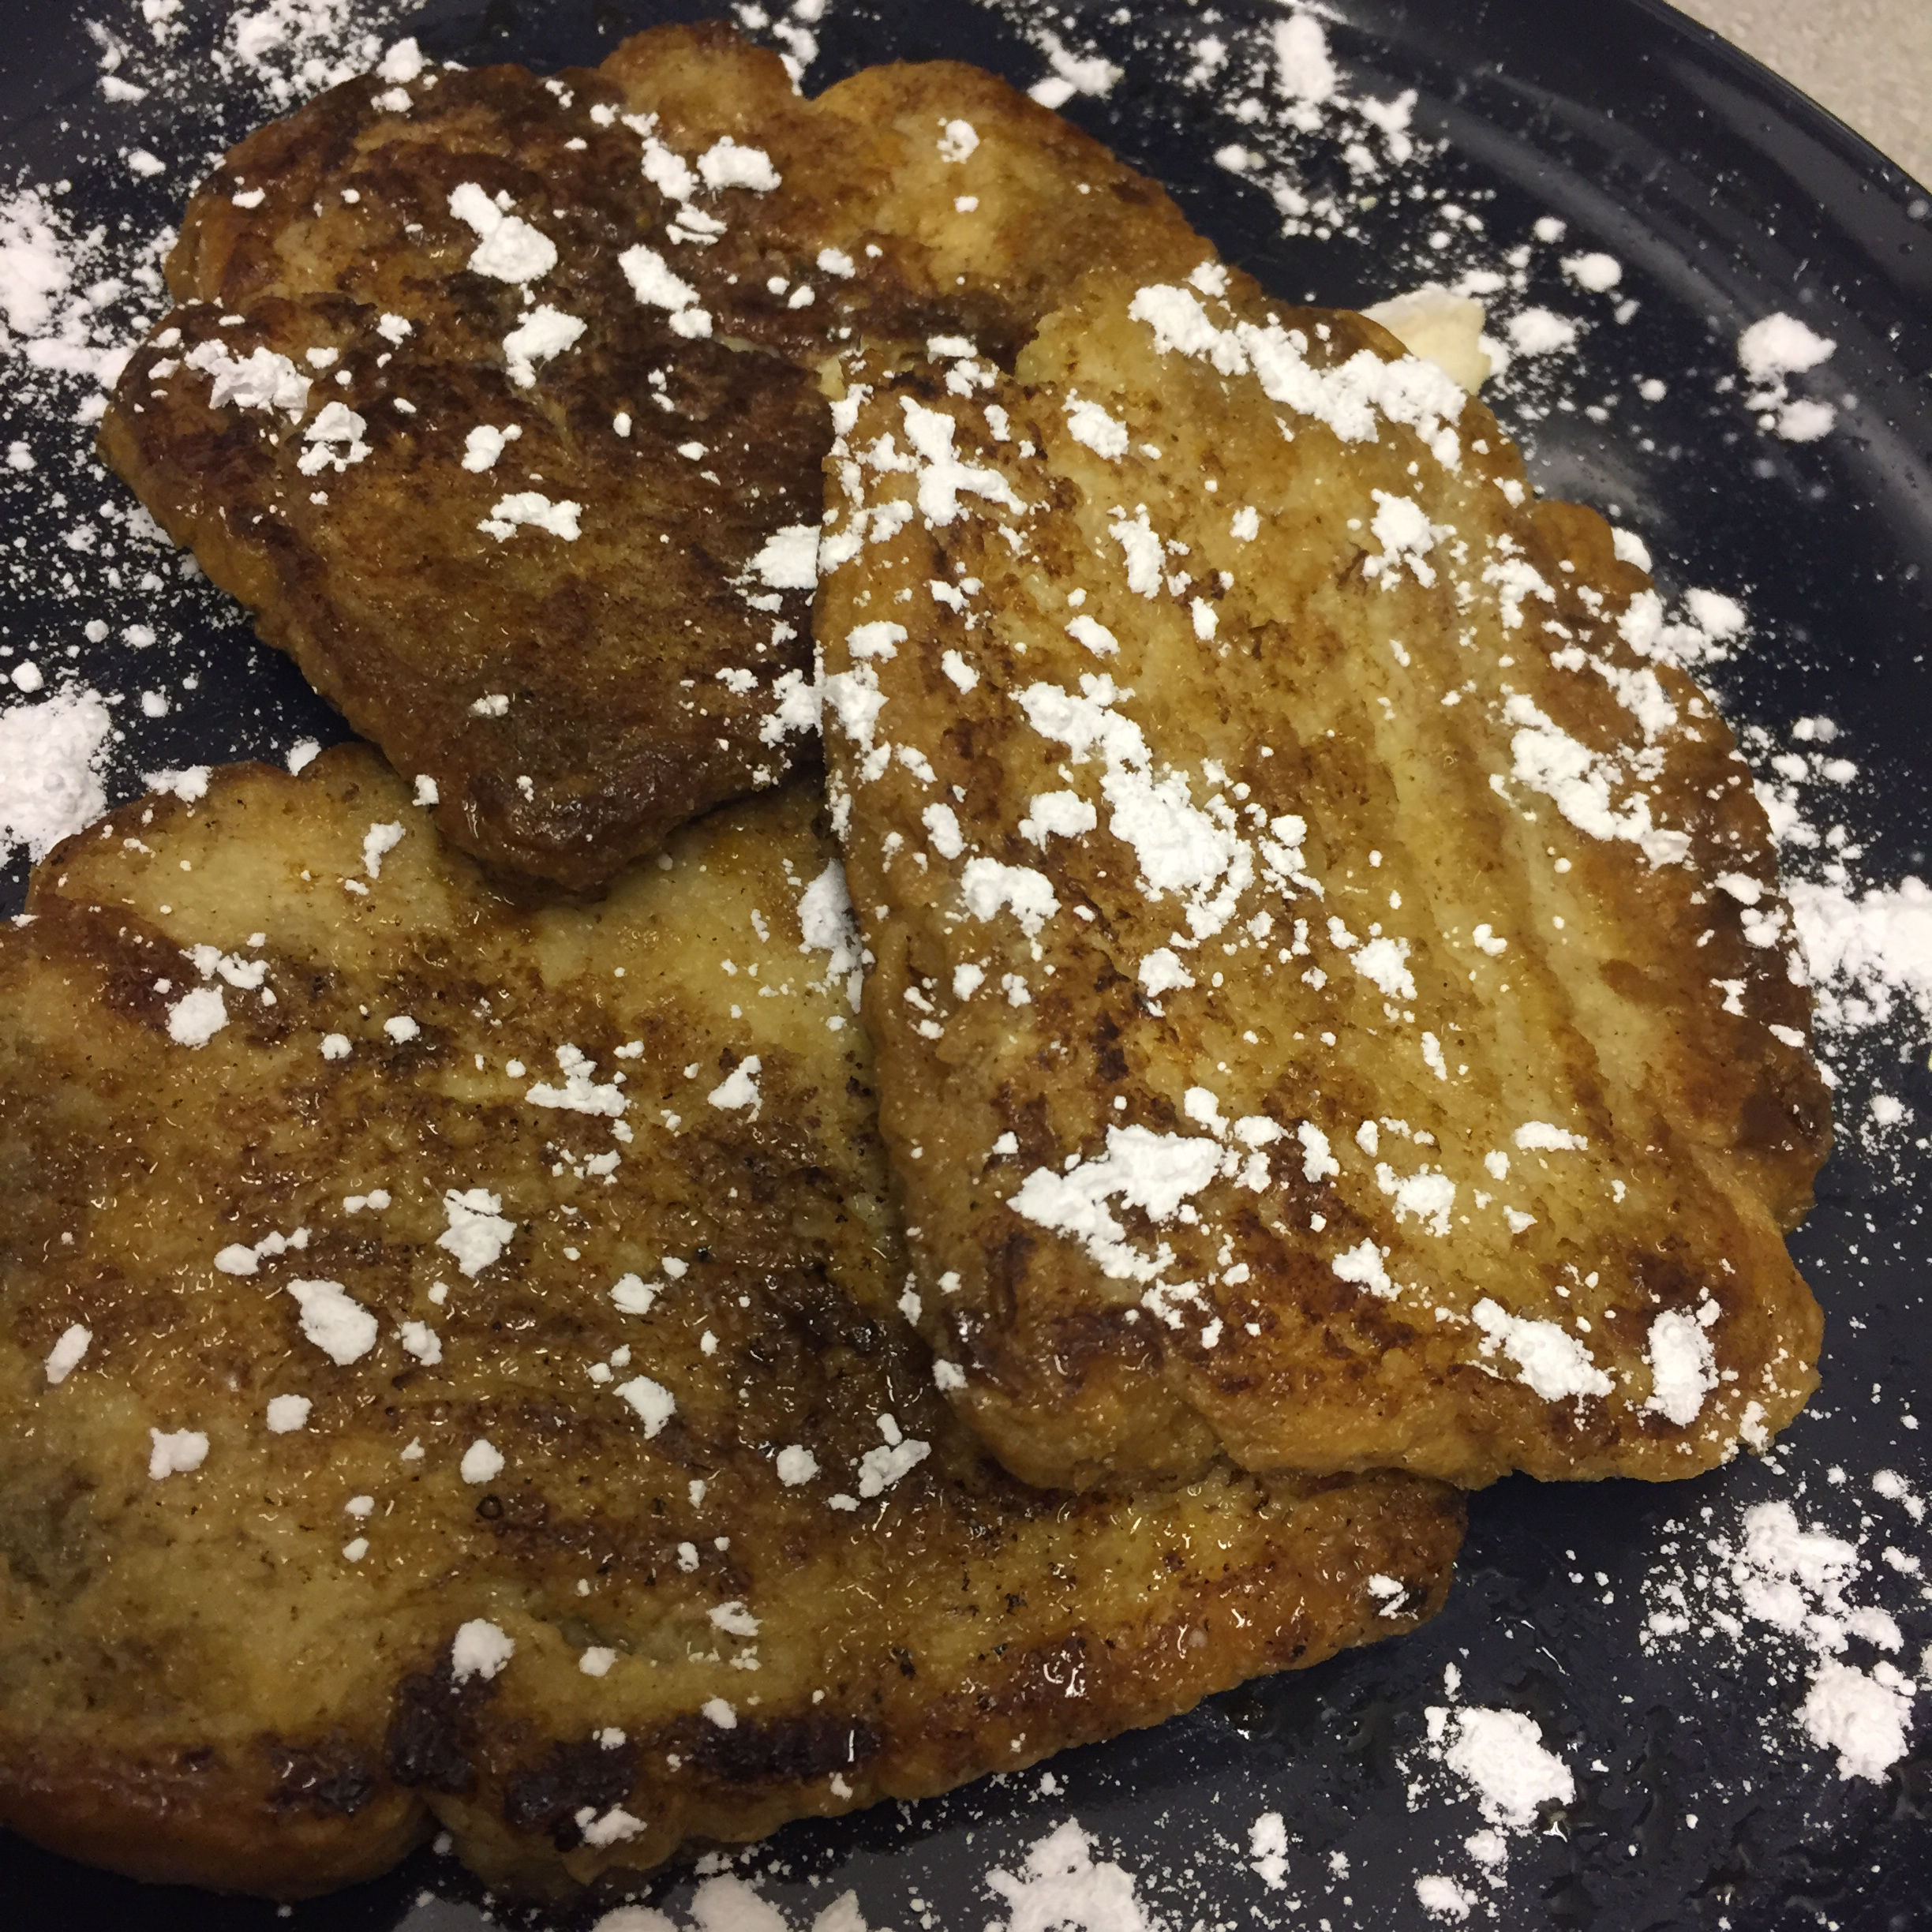 Caramelized French Toast Skye Desiree